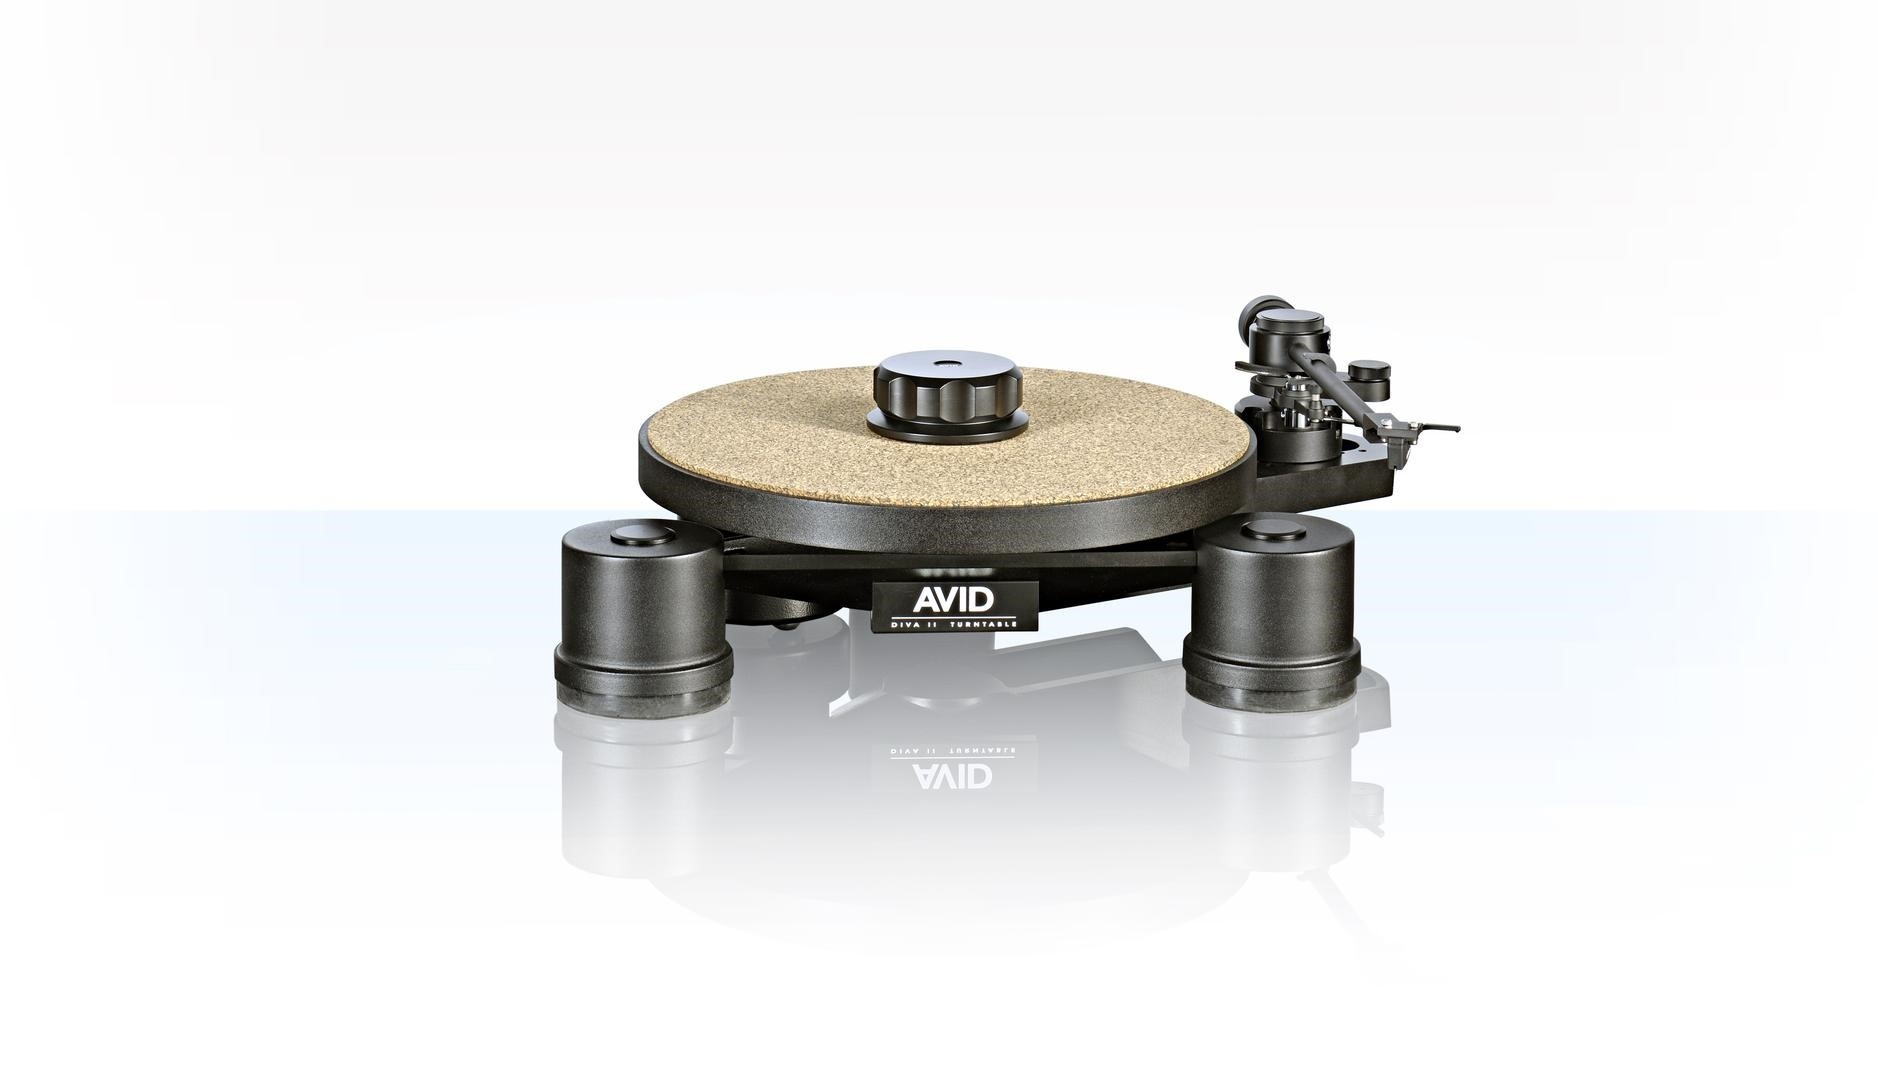 dau dia thanAvid Diva II Turntable tot